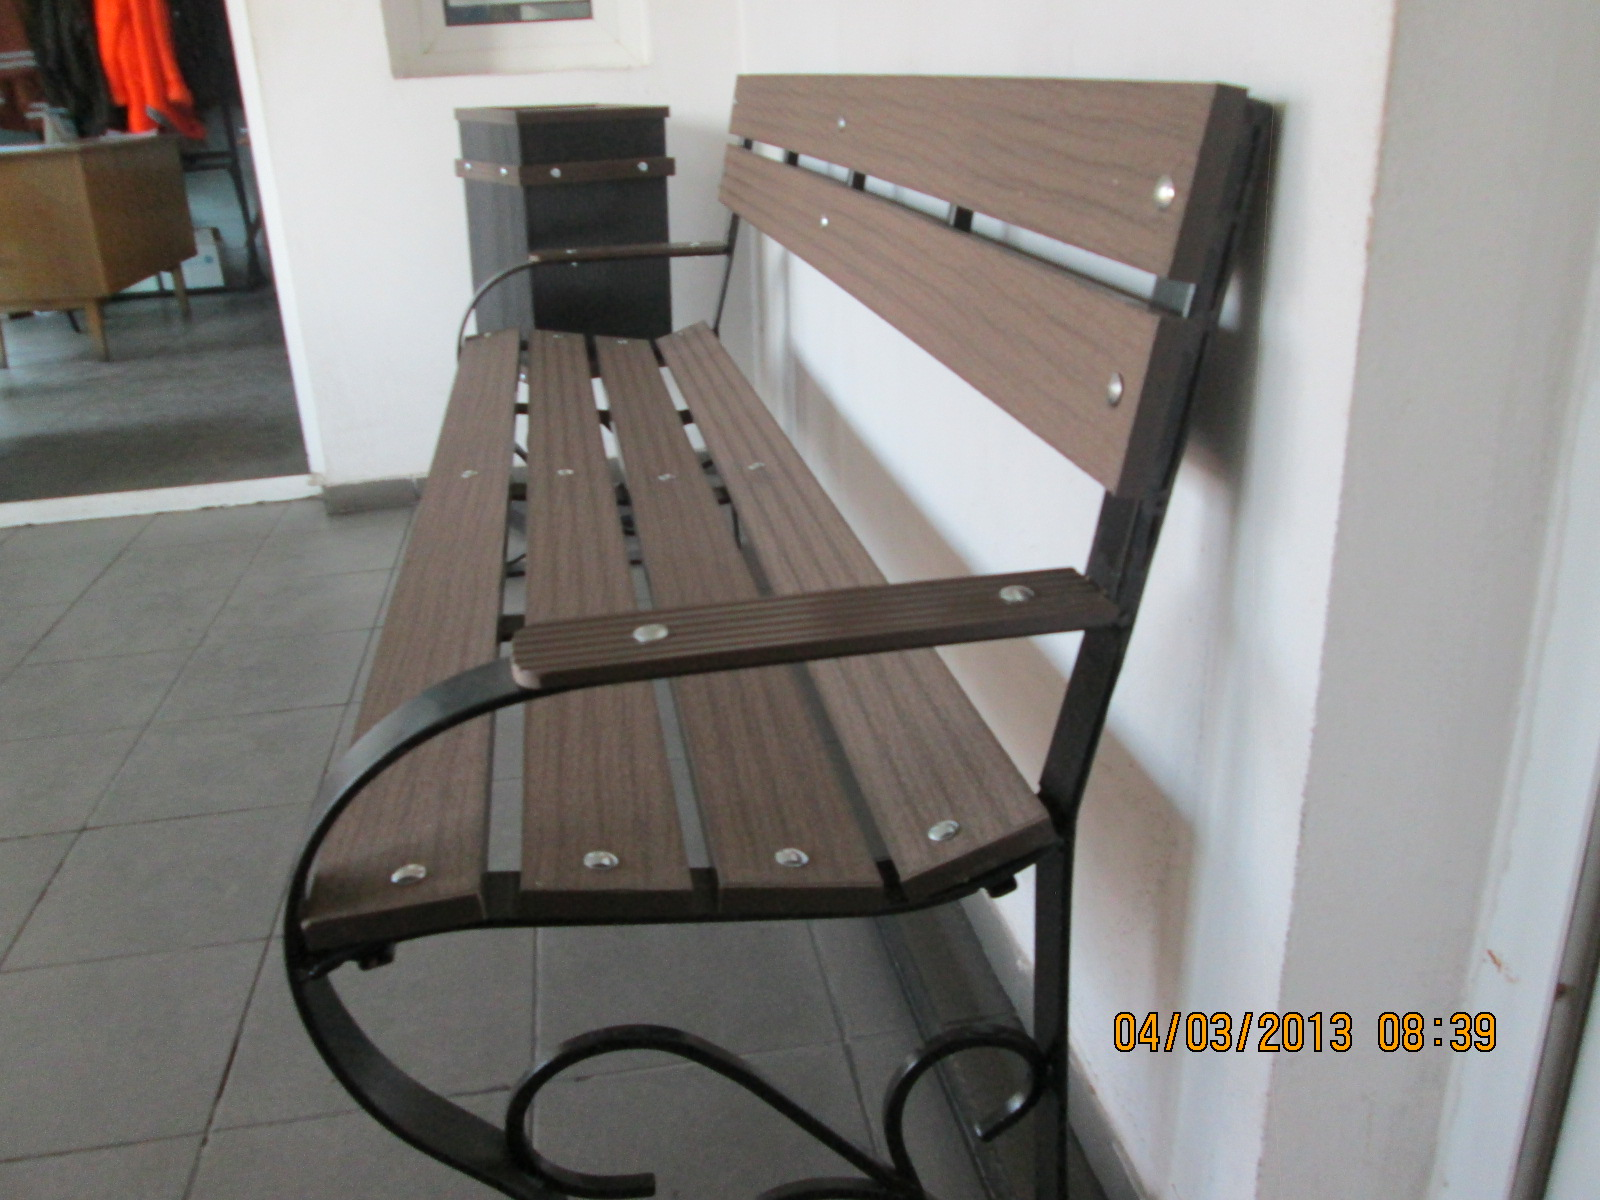 Mobilier urban din material compozit WPC  - Poza 12